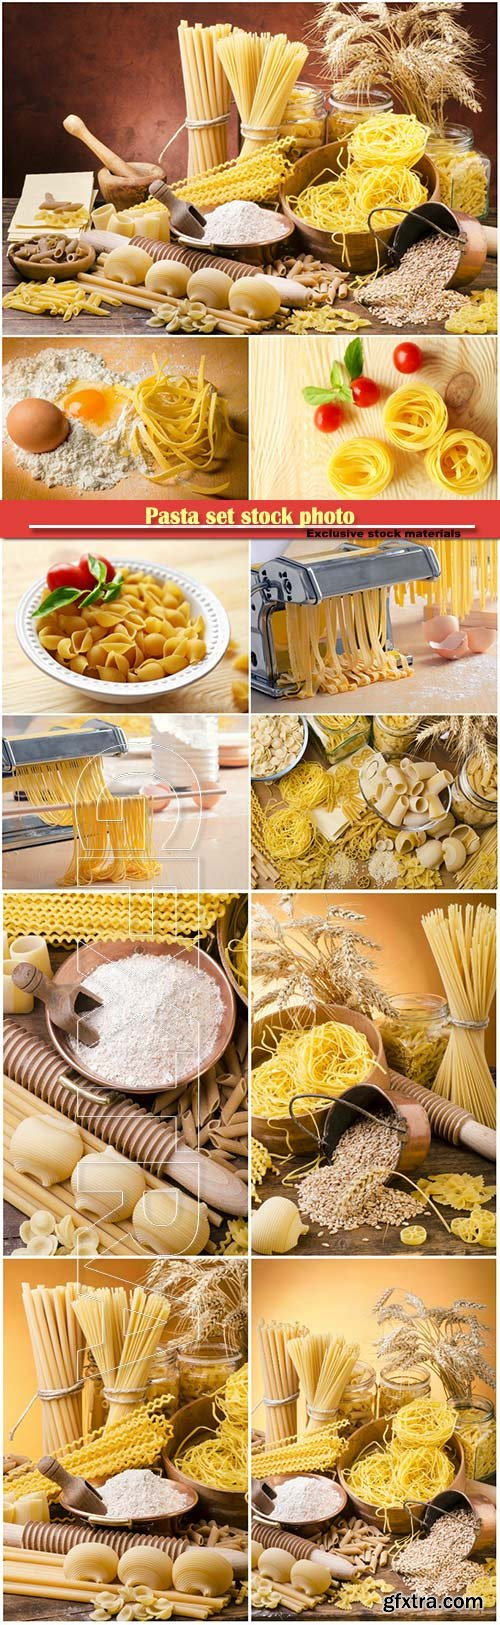 Pasta set stock photo